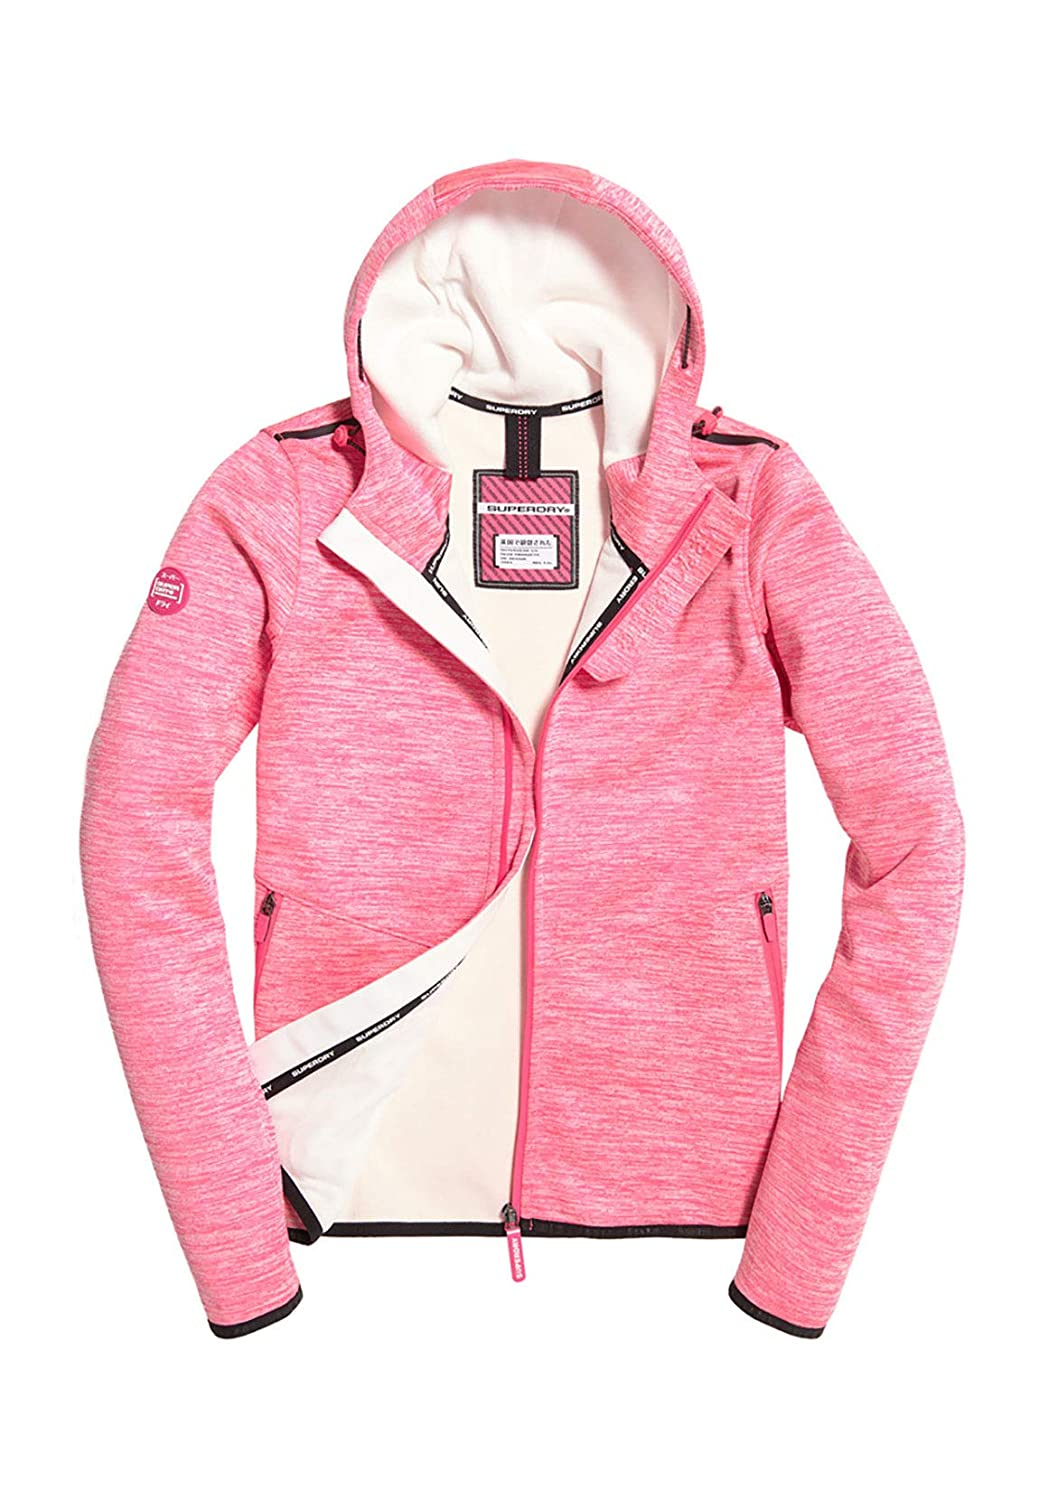 Superdry Women's Prism Hooded SD Windtrekker Jacket Berry SlubEcru